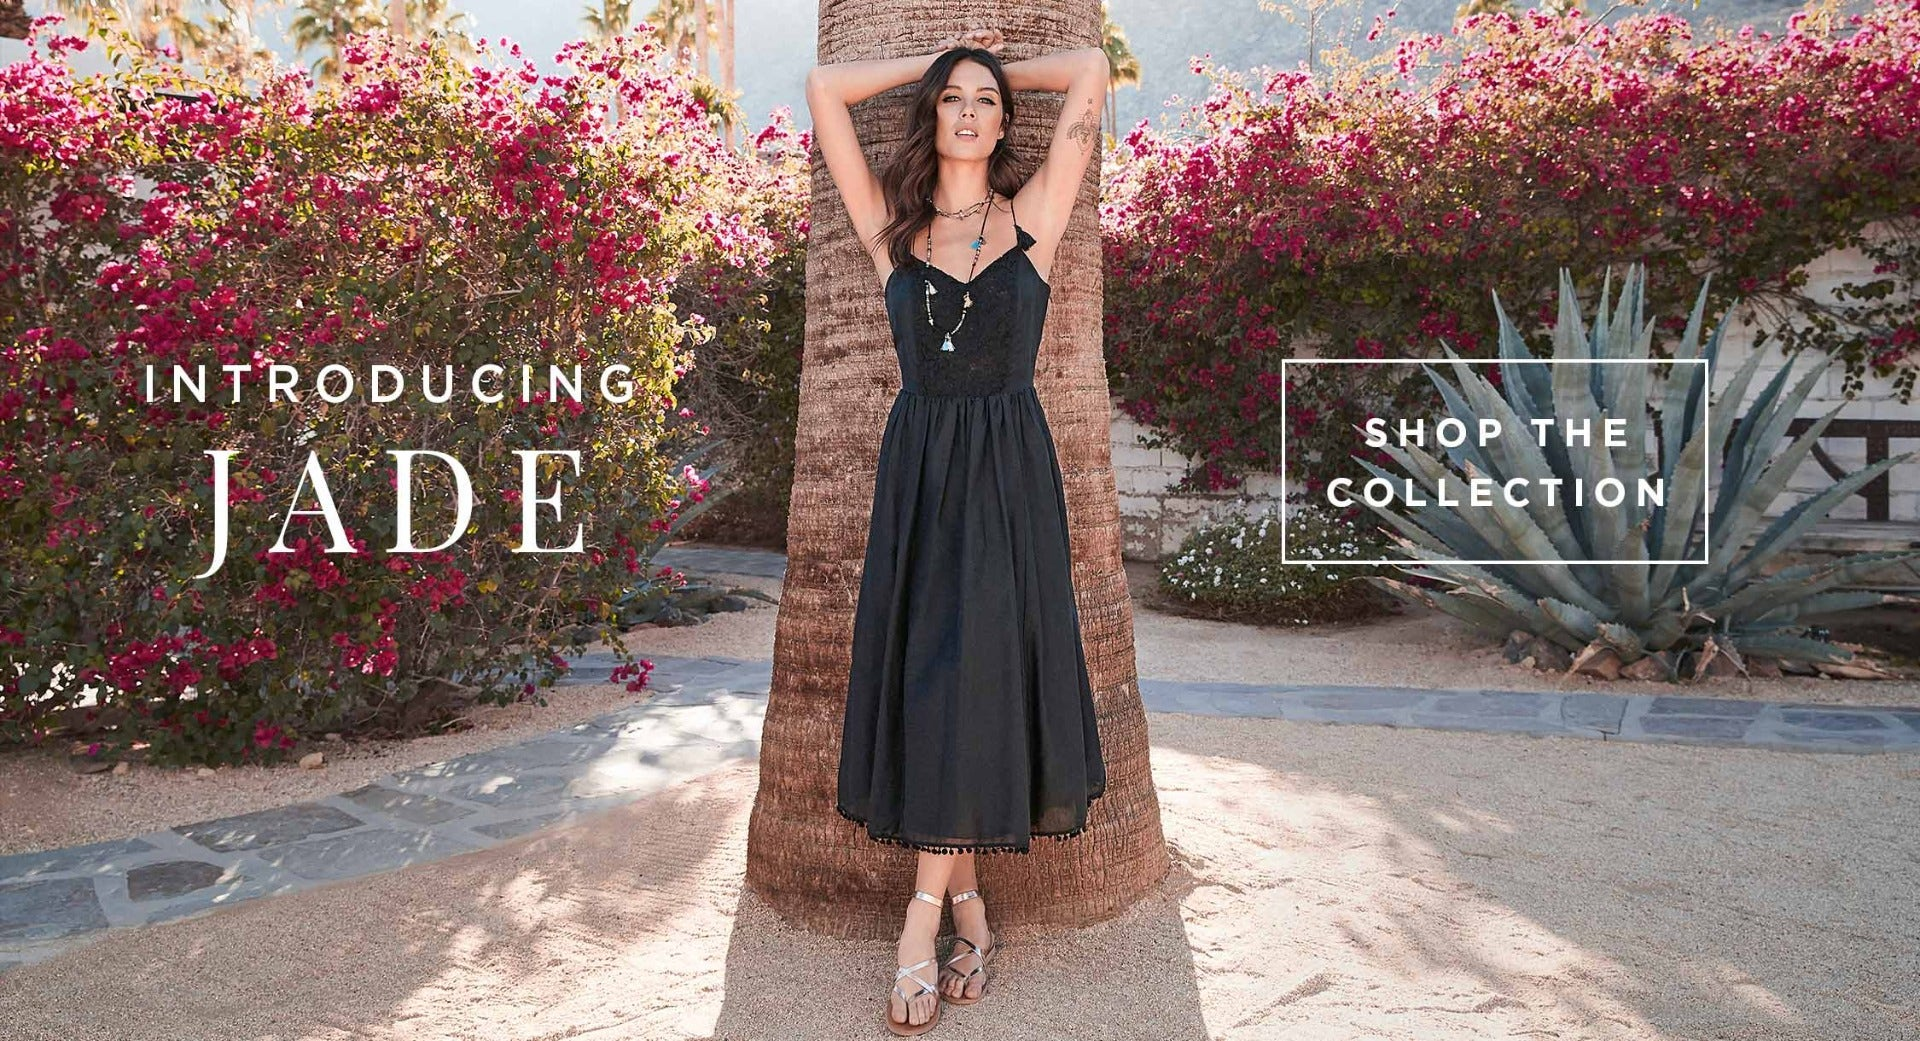 Introducing Jade - Shop the Collection